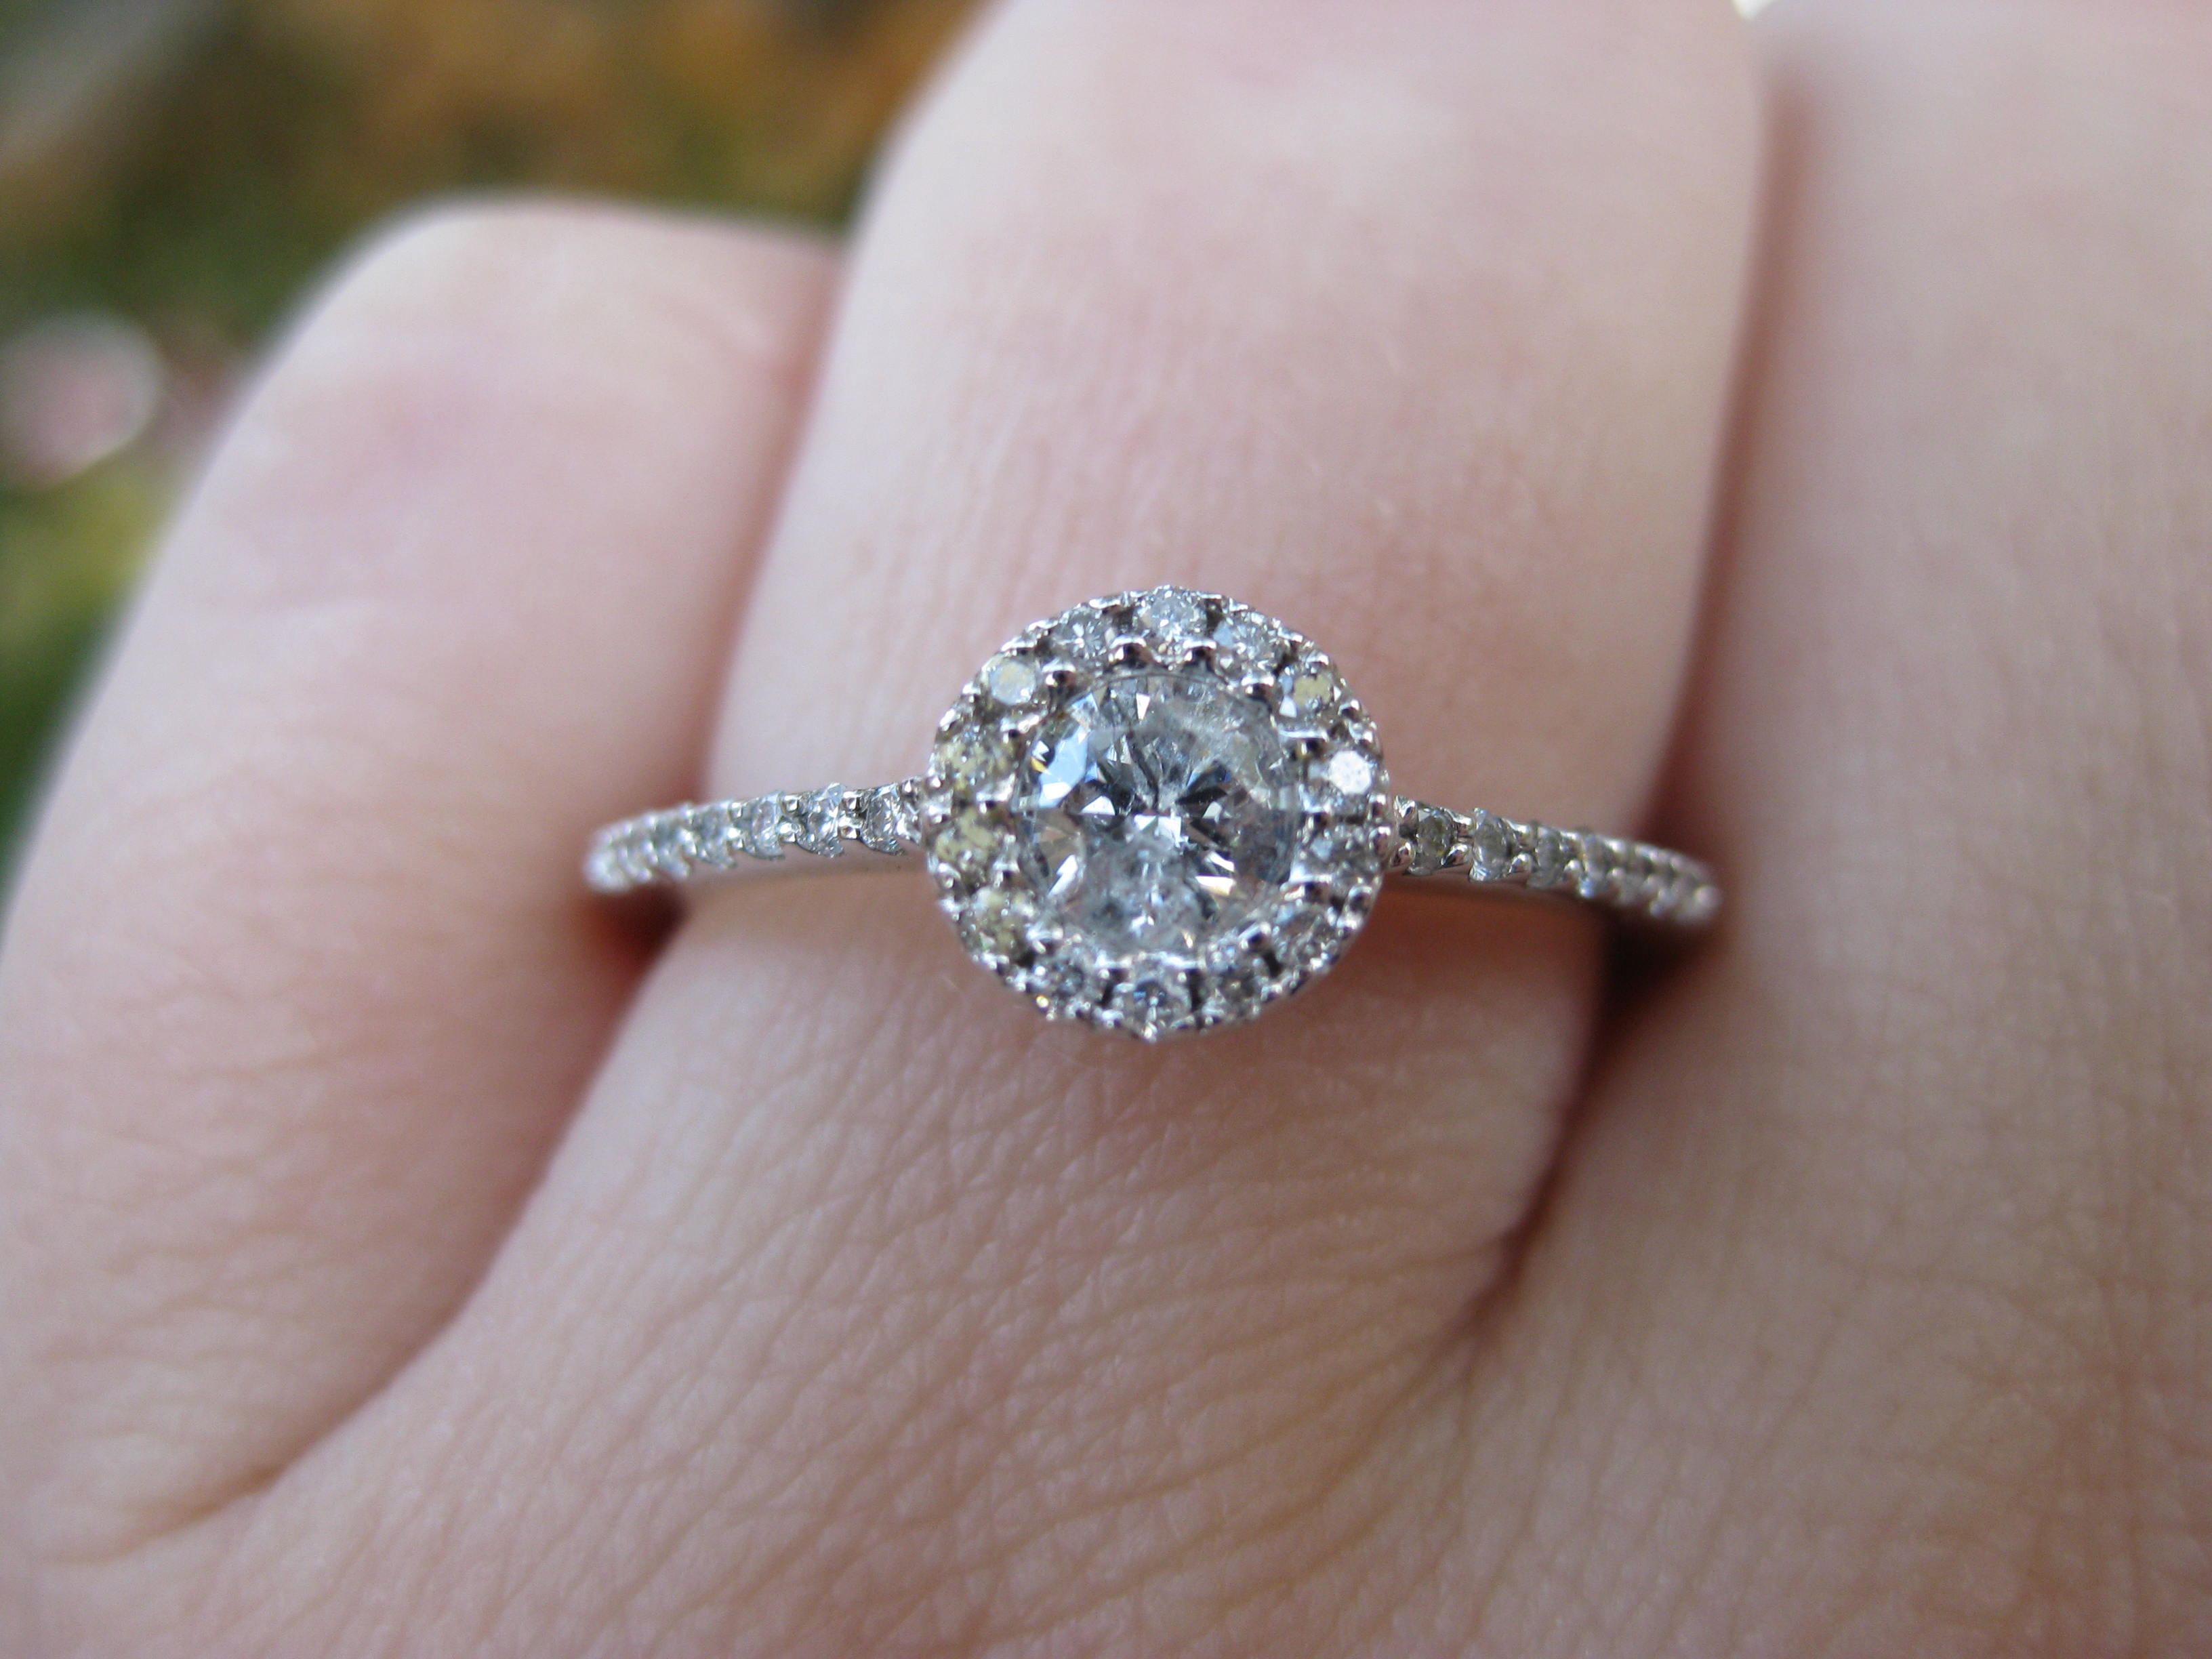 10 Beautiful Engagement Rings For Women 2015 10 Beautiful Engagement